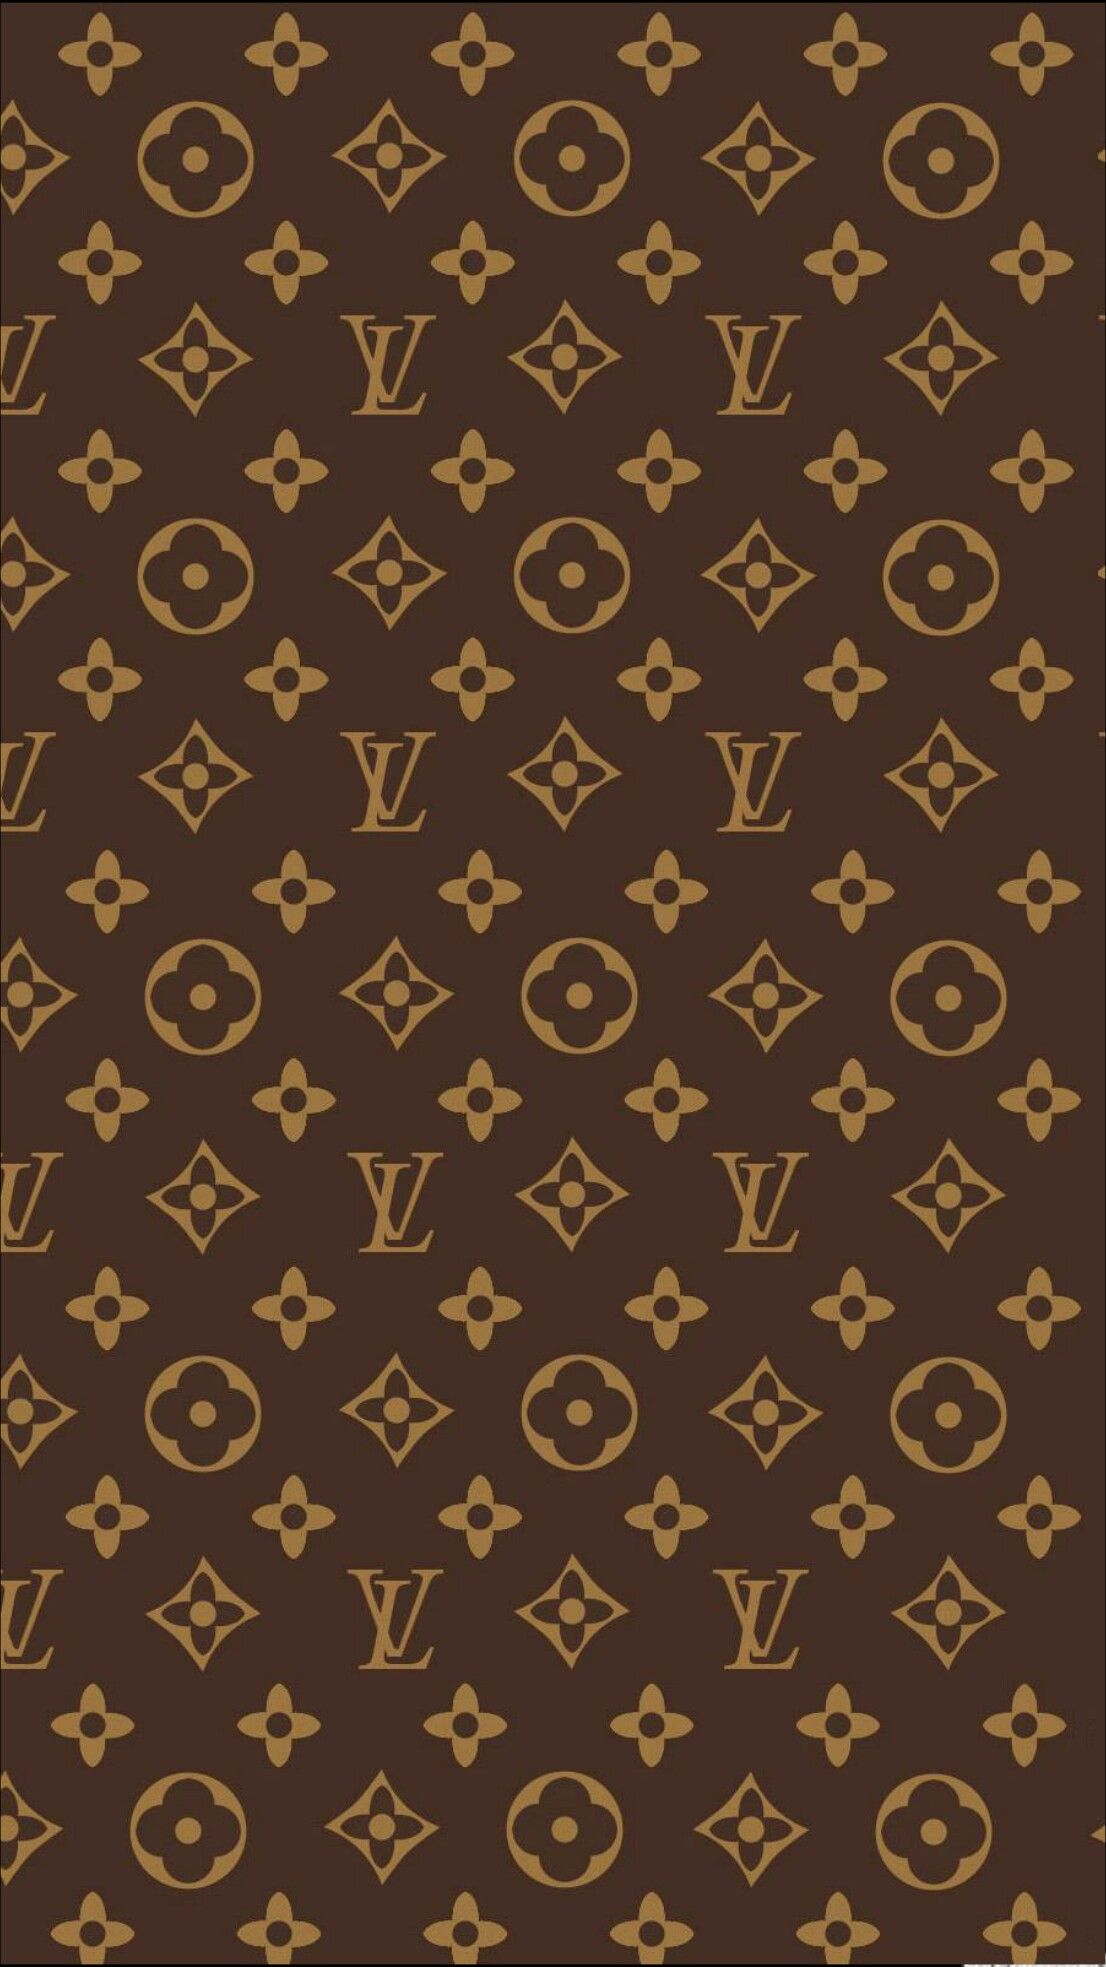 Pin By Donico Carino On Louis Vuitton Iphone Prints Louis Vuitton Iphone Wallpaper Iphone 5s Wallpaper